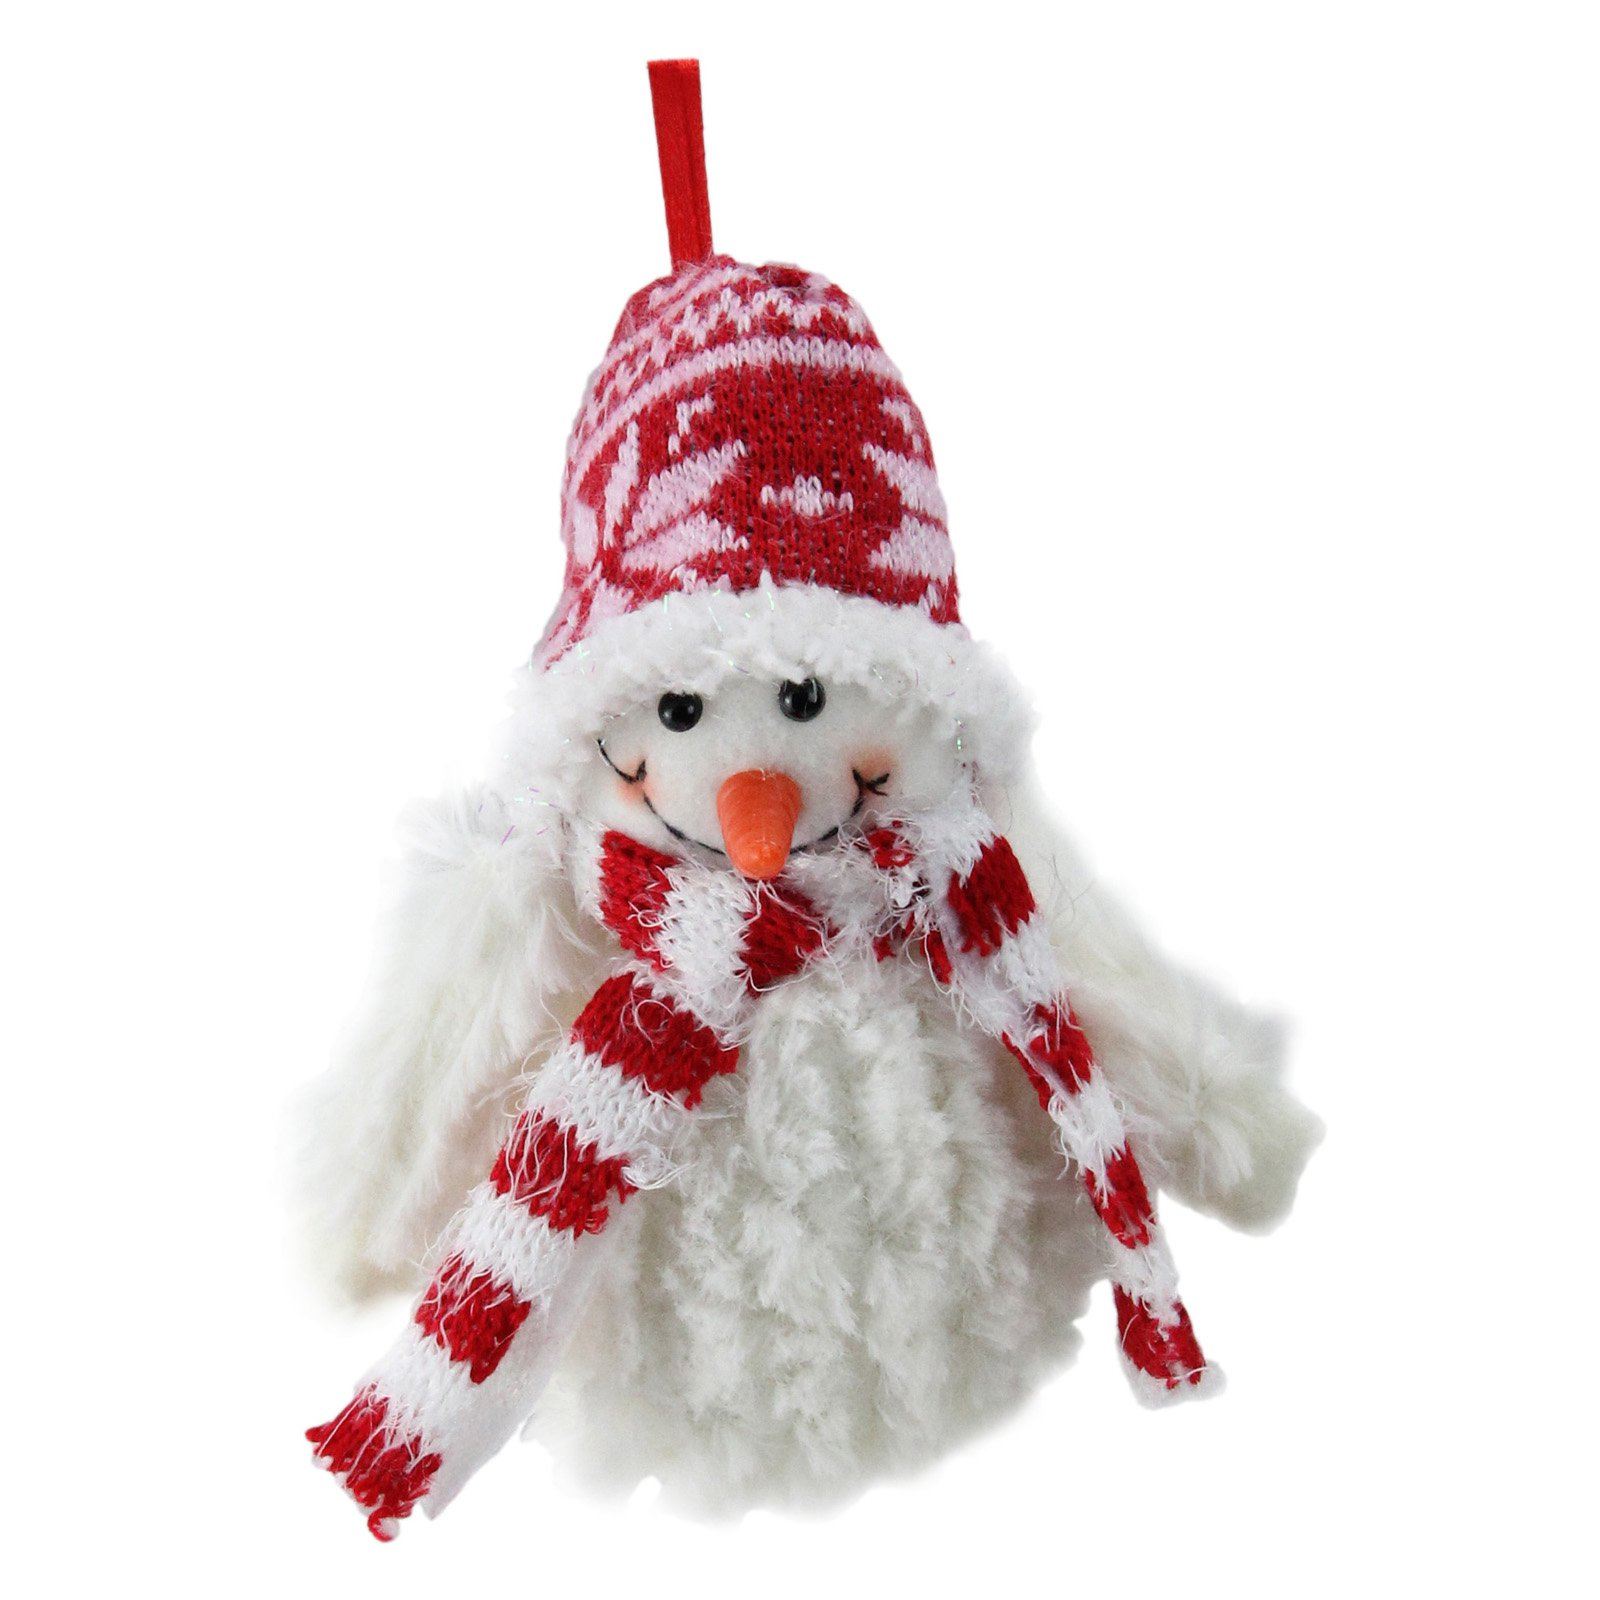 Northlight Smiling Fuzzy Snowman with Red Nordic Hat and Scarf Christmas Figurine Ornament